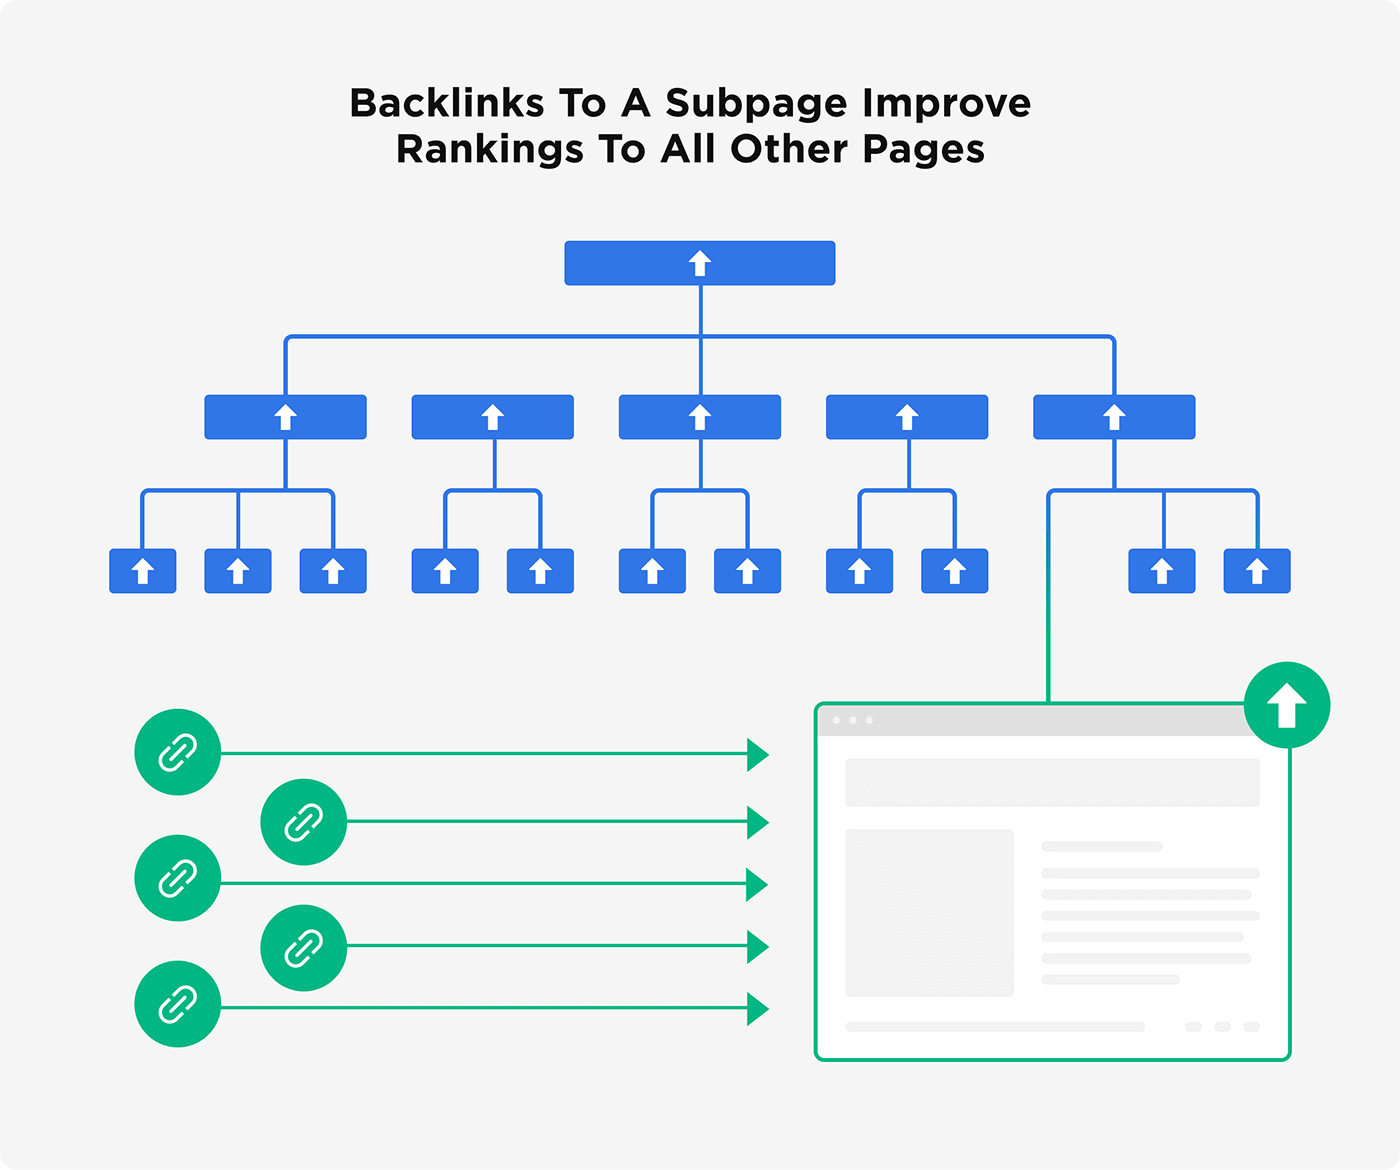 Backlinks to a subpage improve rankings to all other pages